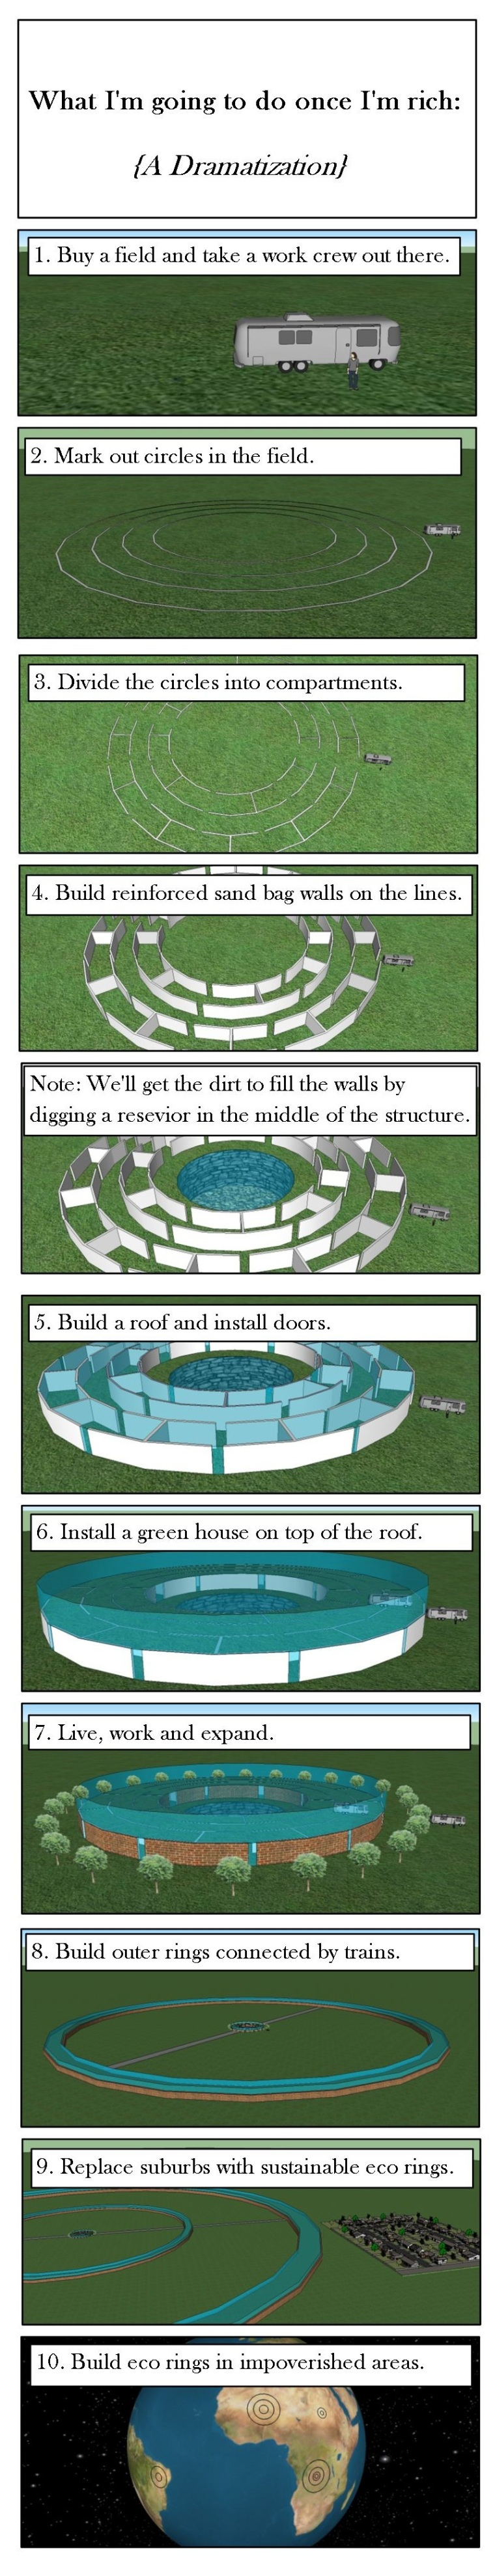 3-D architectural drawnings showing the stages of building and expanding circular, sustainable monasteries